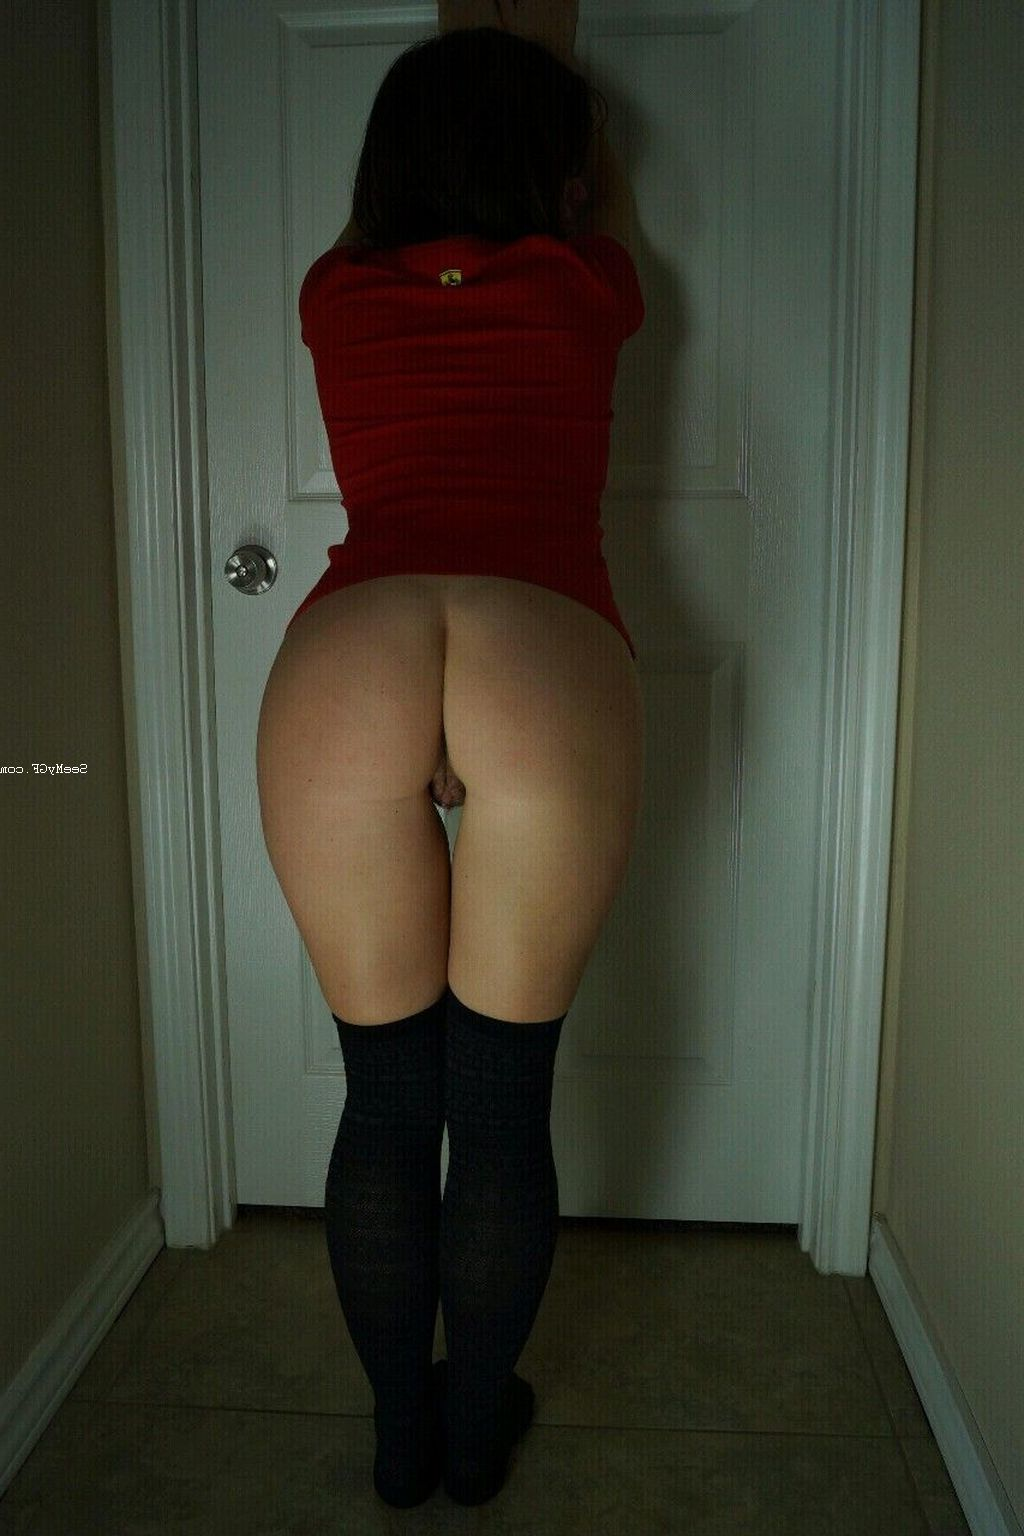 Amater ass sex pictures